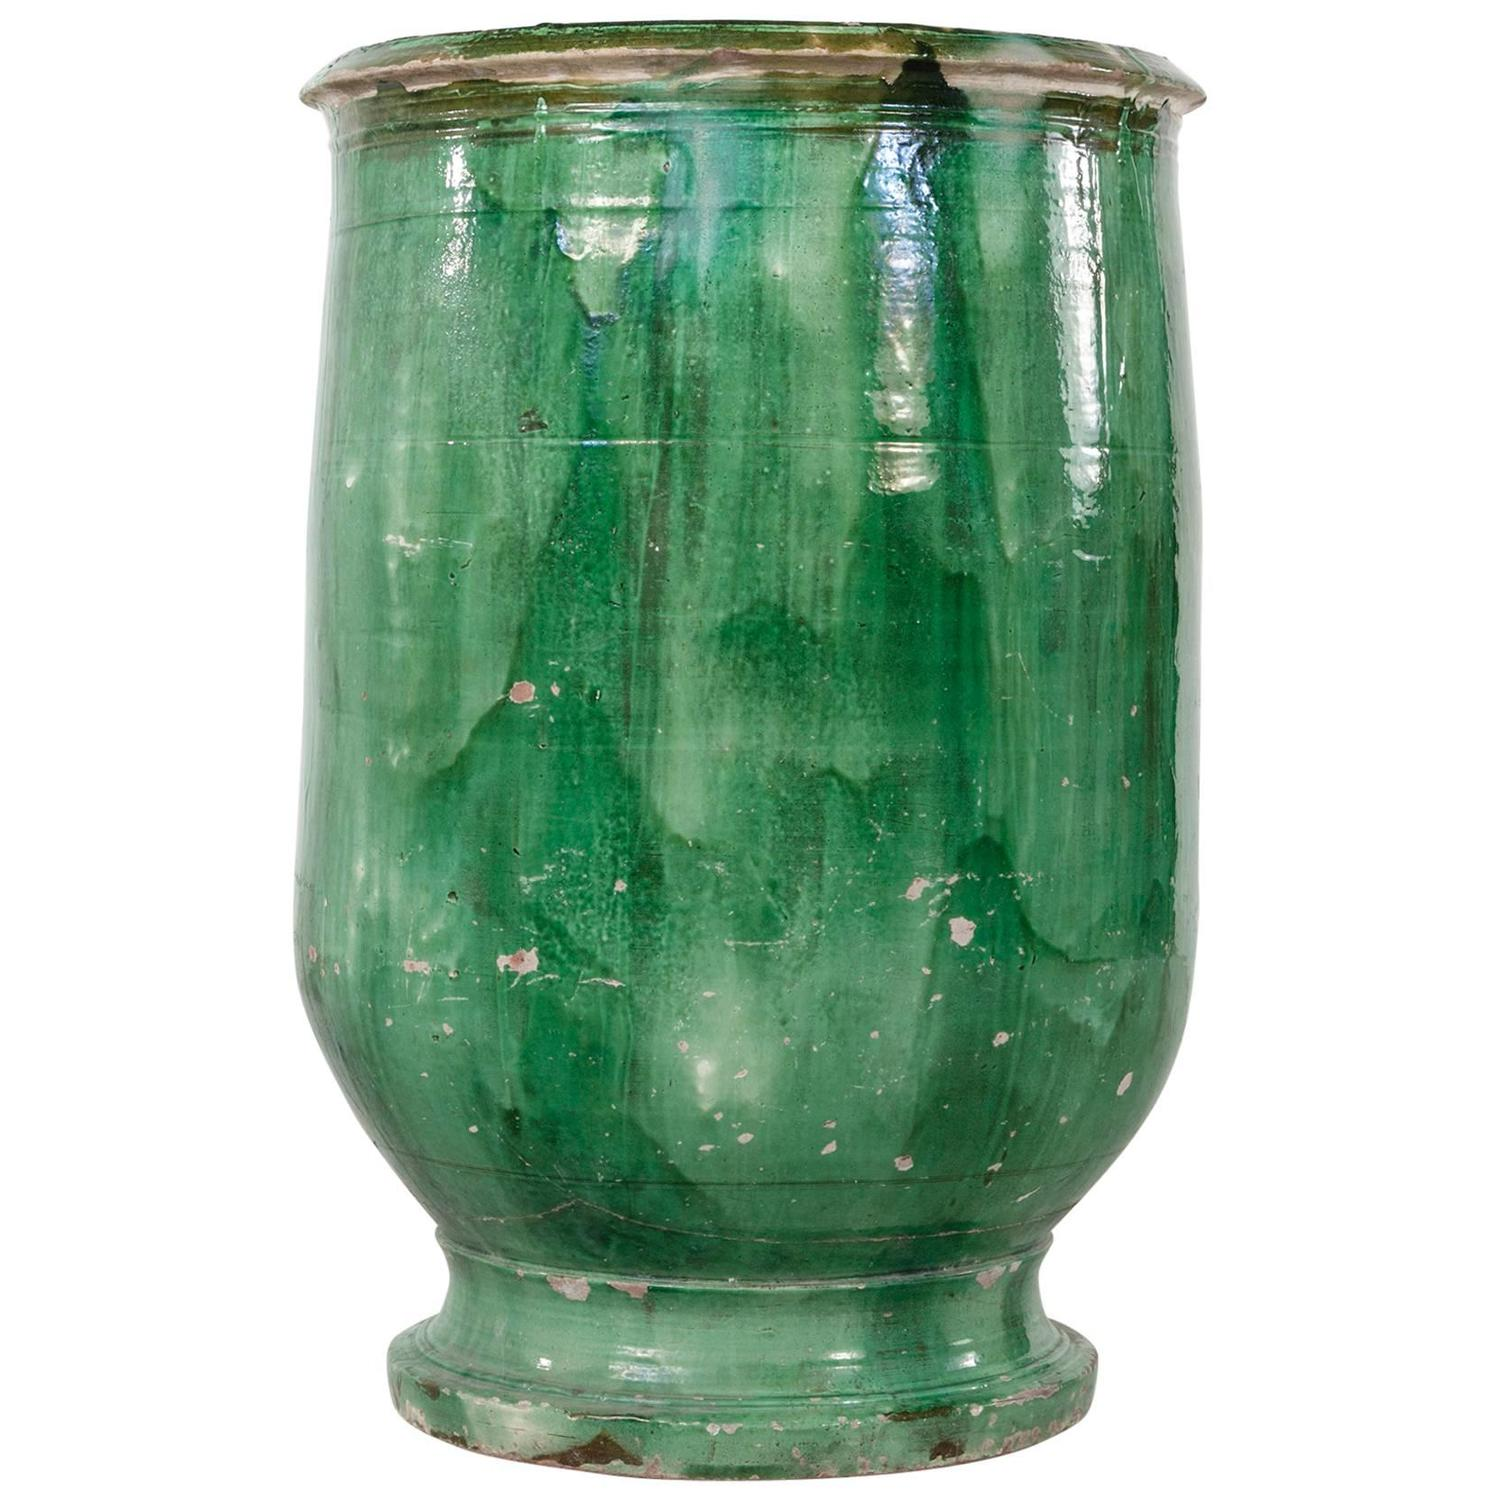 Large Provencal Green Biot Faience Olive Jar Urn Circa 1800 For Sale At 1stdibs